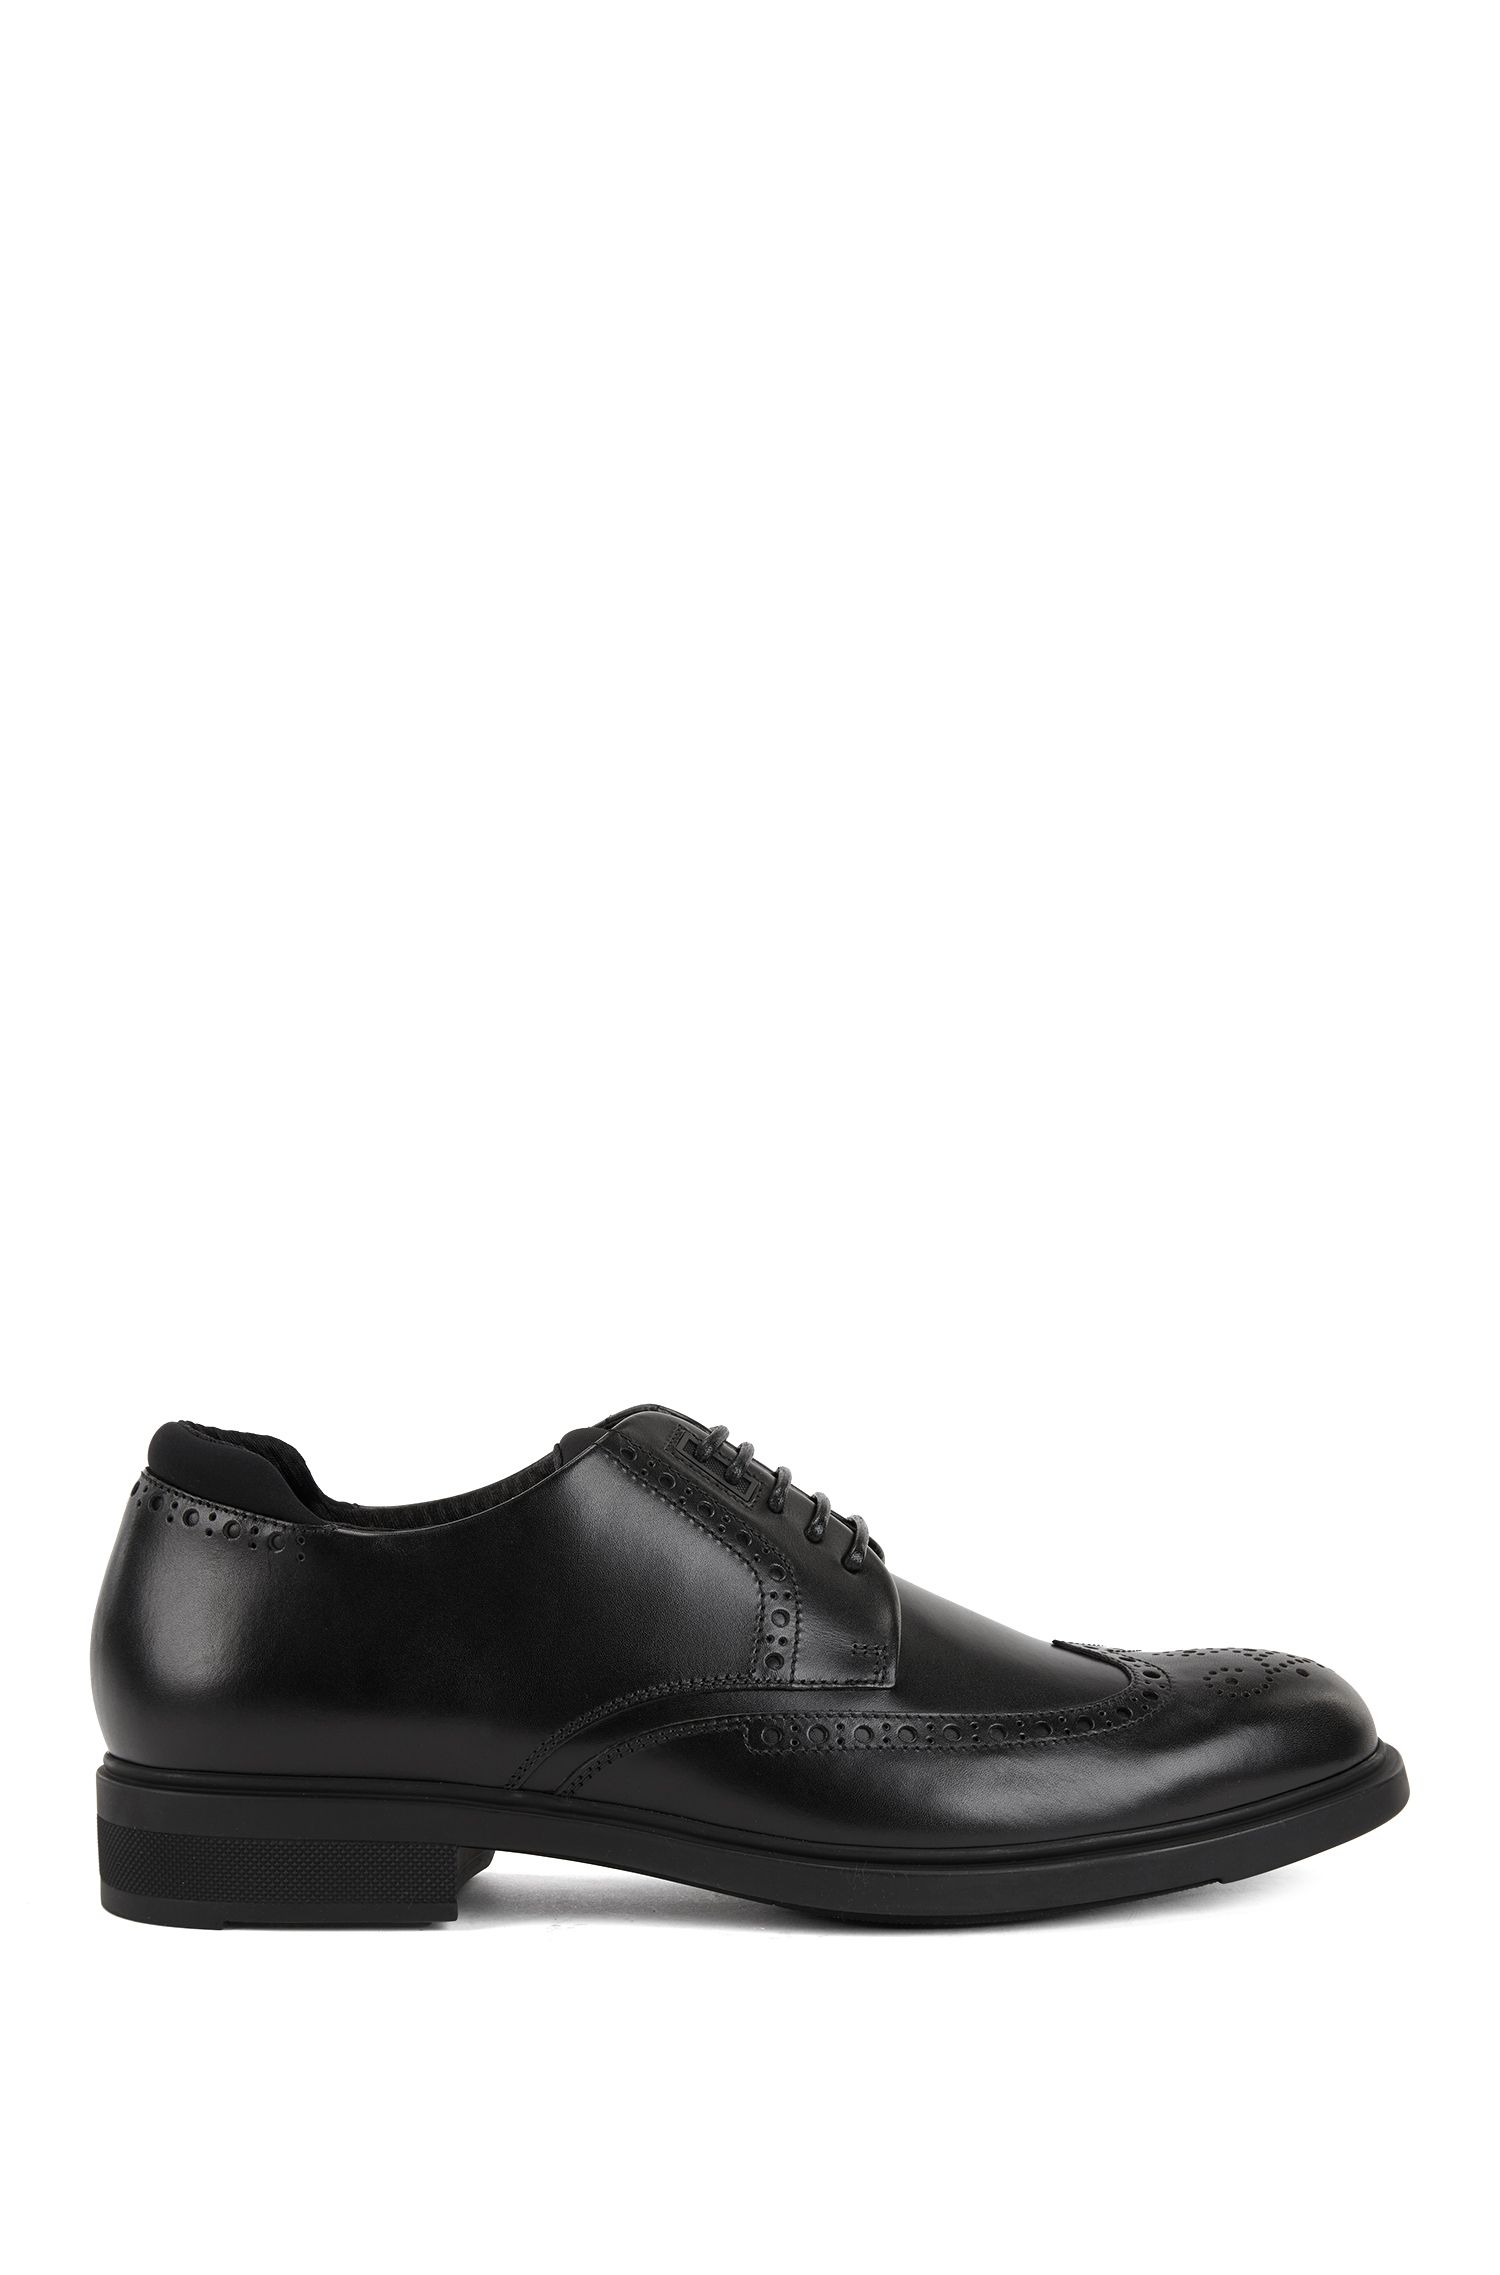 Scarpe brogue stile derby in pelle di vitello con fodera interna Outlast®, Nero